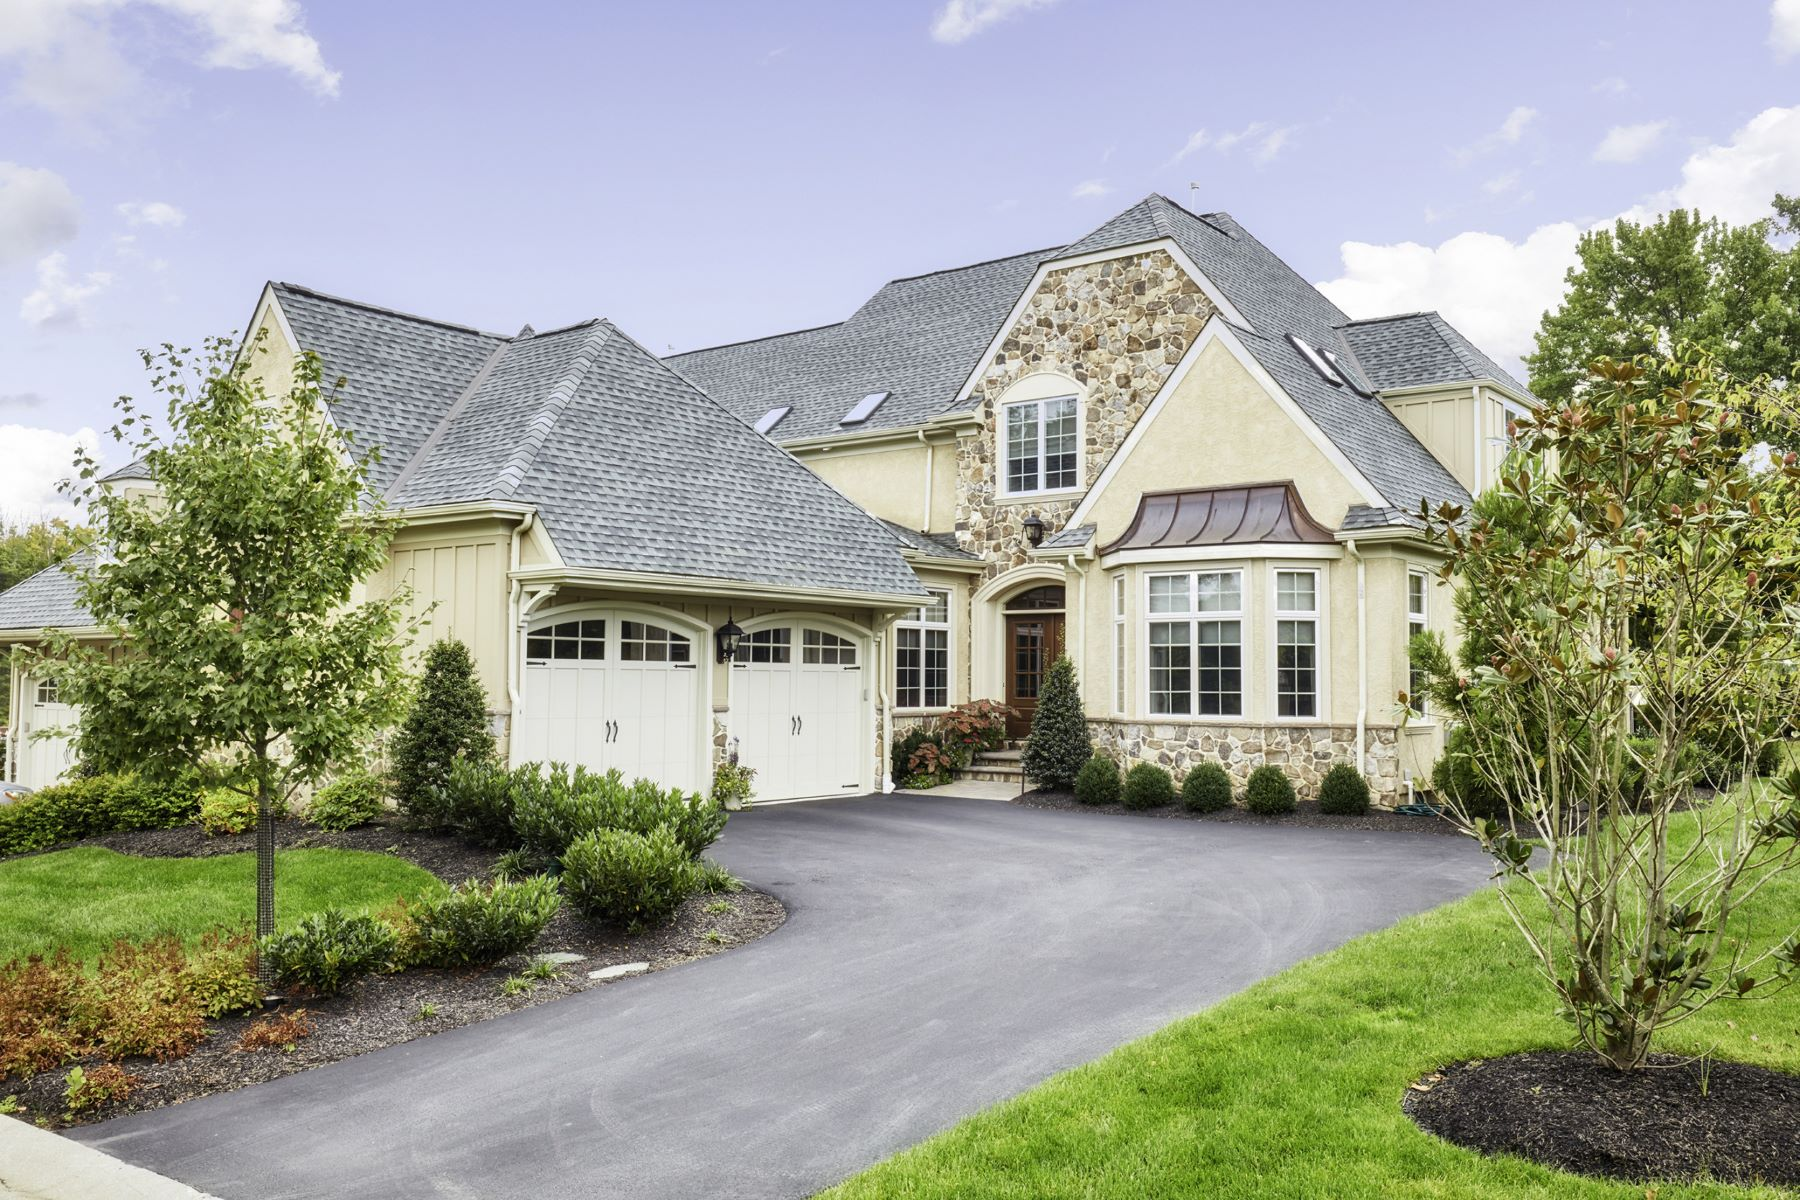 واحد منزل الأسرة للـ Sale في 131 Green Ln Haverford, Pennsylvania, 19041 United States